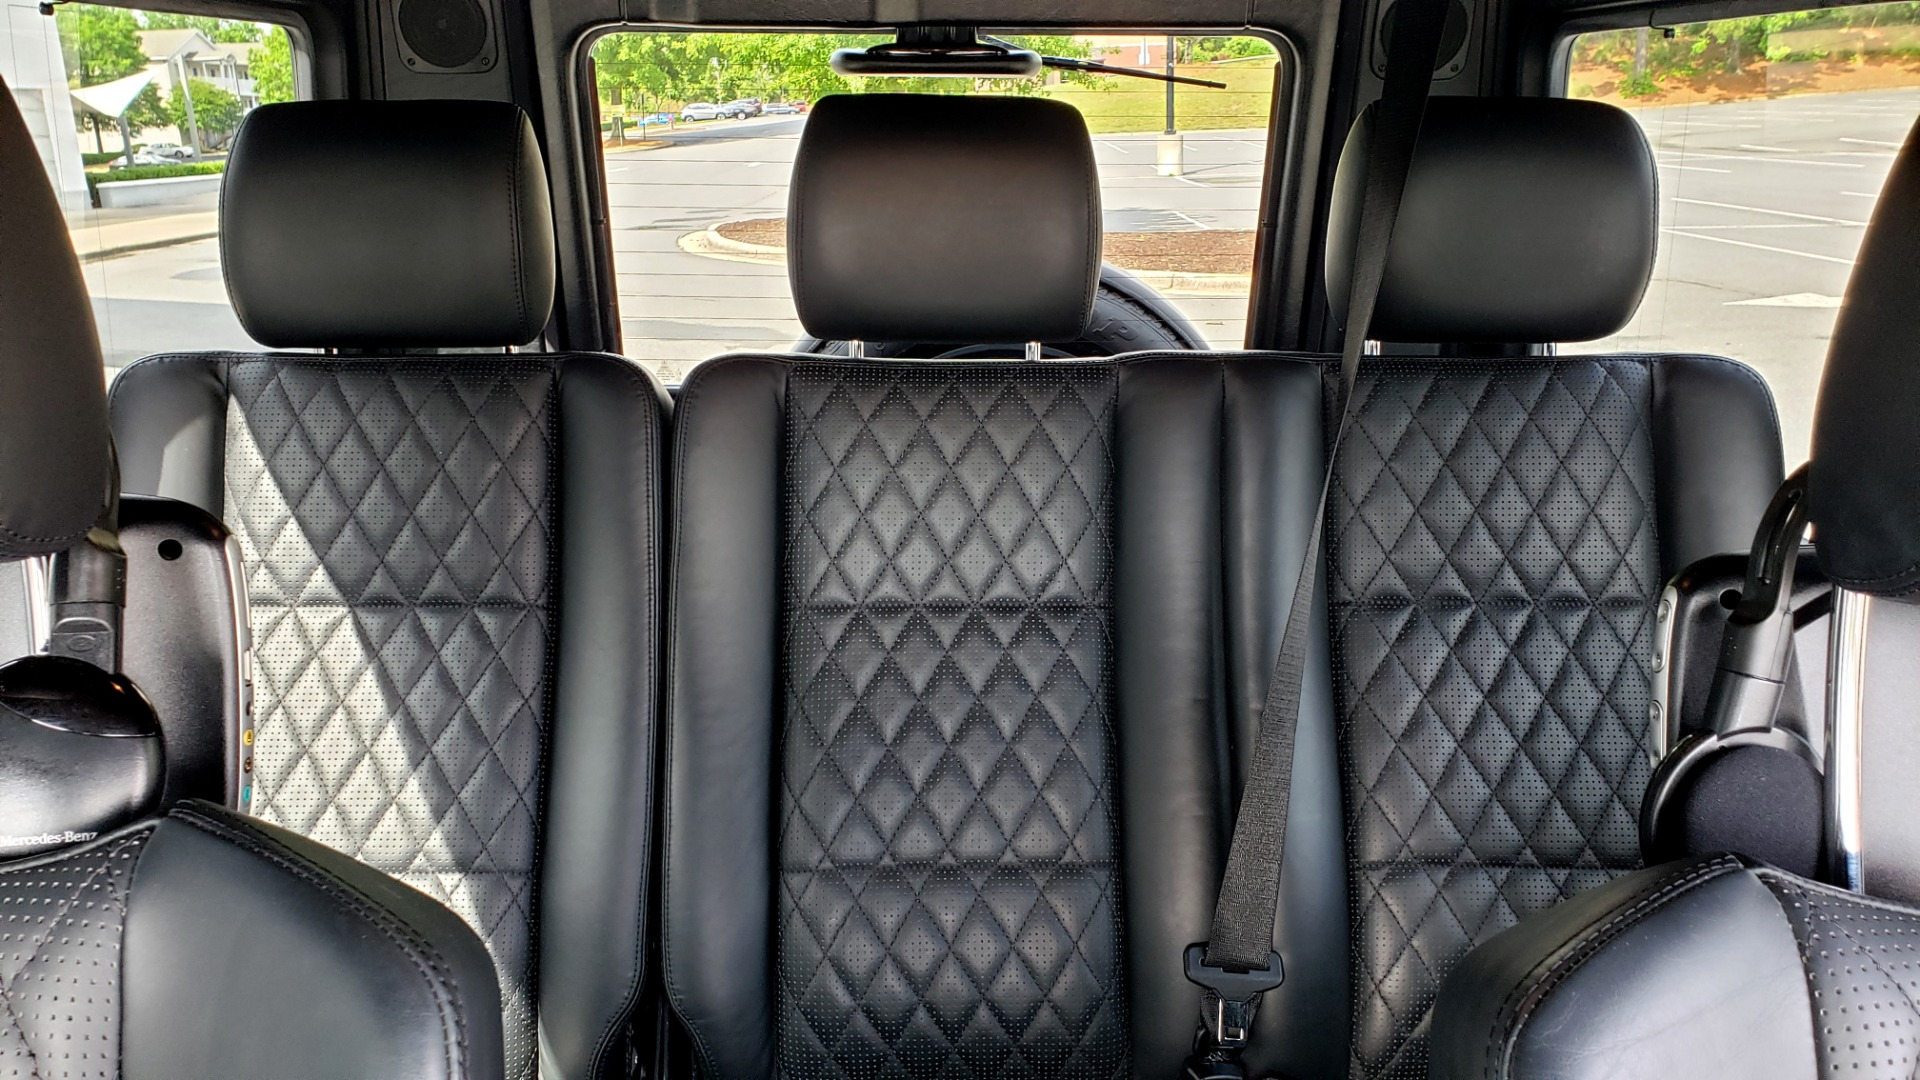 Used 2016 Mercedes-Benz G-CLASS AMG G 63 4MATIC / NAV / SUNROOF / H/K SND / ENT SYS / REARVIEW for sale $99,000 at Formula Imports in Charlotte NC 28227 47